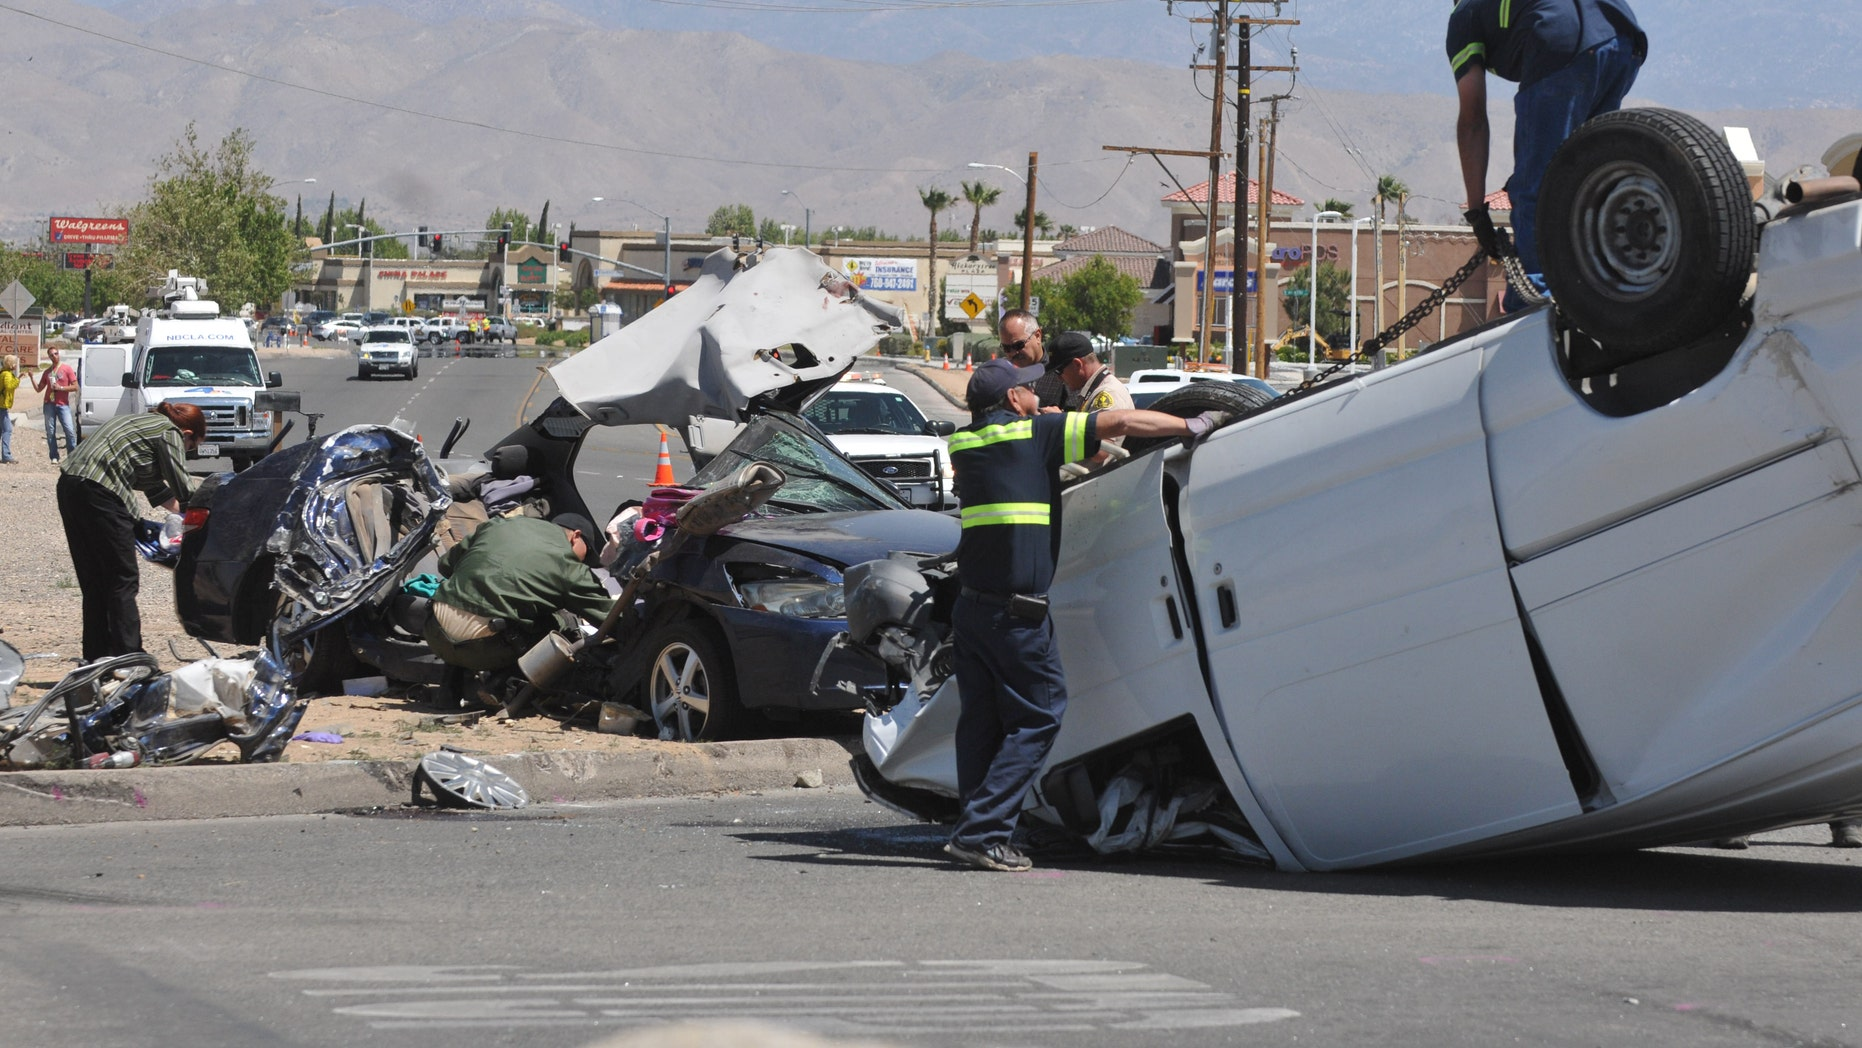 Authorities work on the scene of a fatal traffic accident in Hesperia, Calif, Sunday, May 11, 2014. A spokeswoman with the San Bernardino County Sheriff's Department says that four people are confirmed dead after a van smashed into a car that was sitting at a stop sign. (AP Photo/The Victor Valley Daily Press, David Pardo)